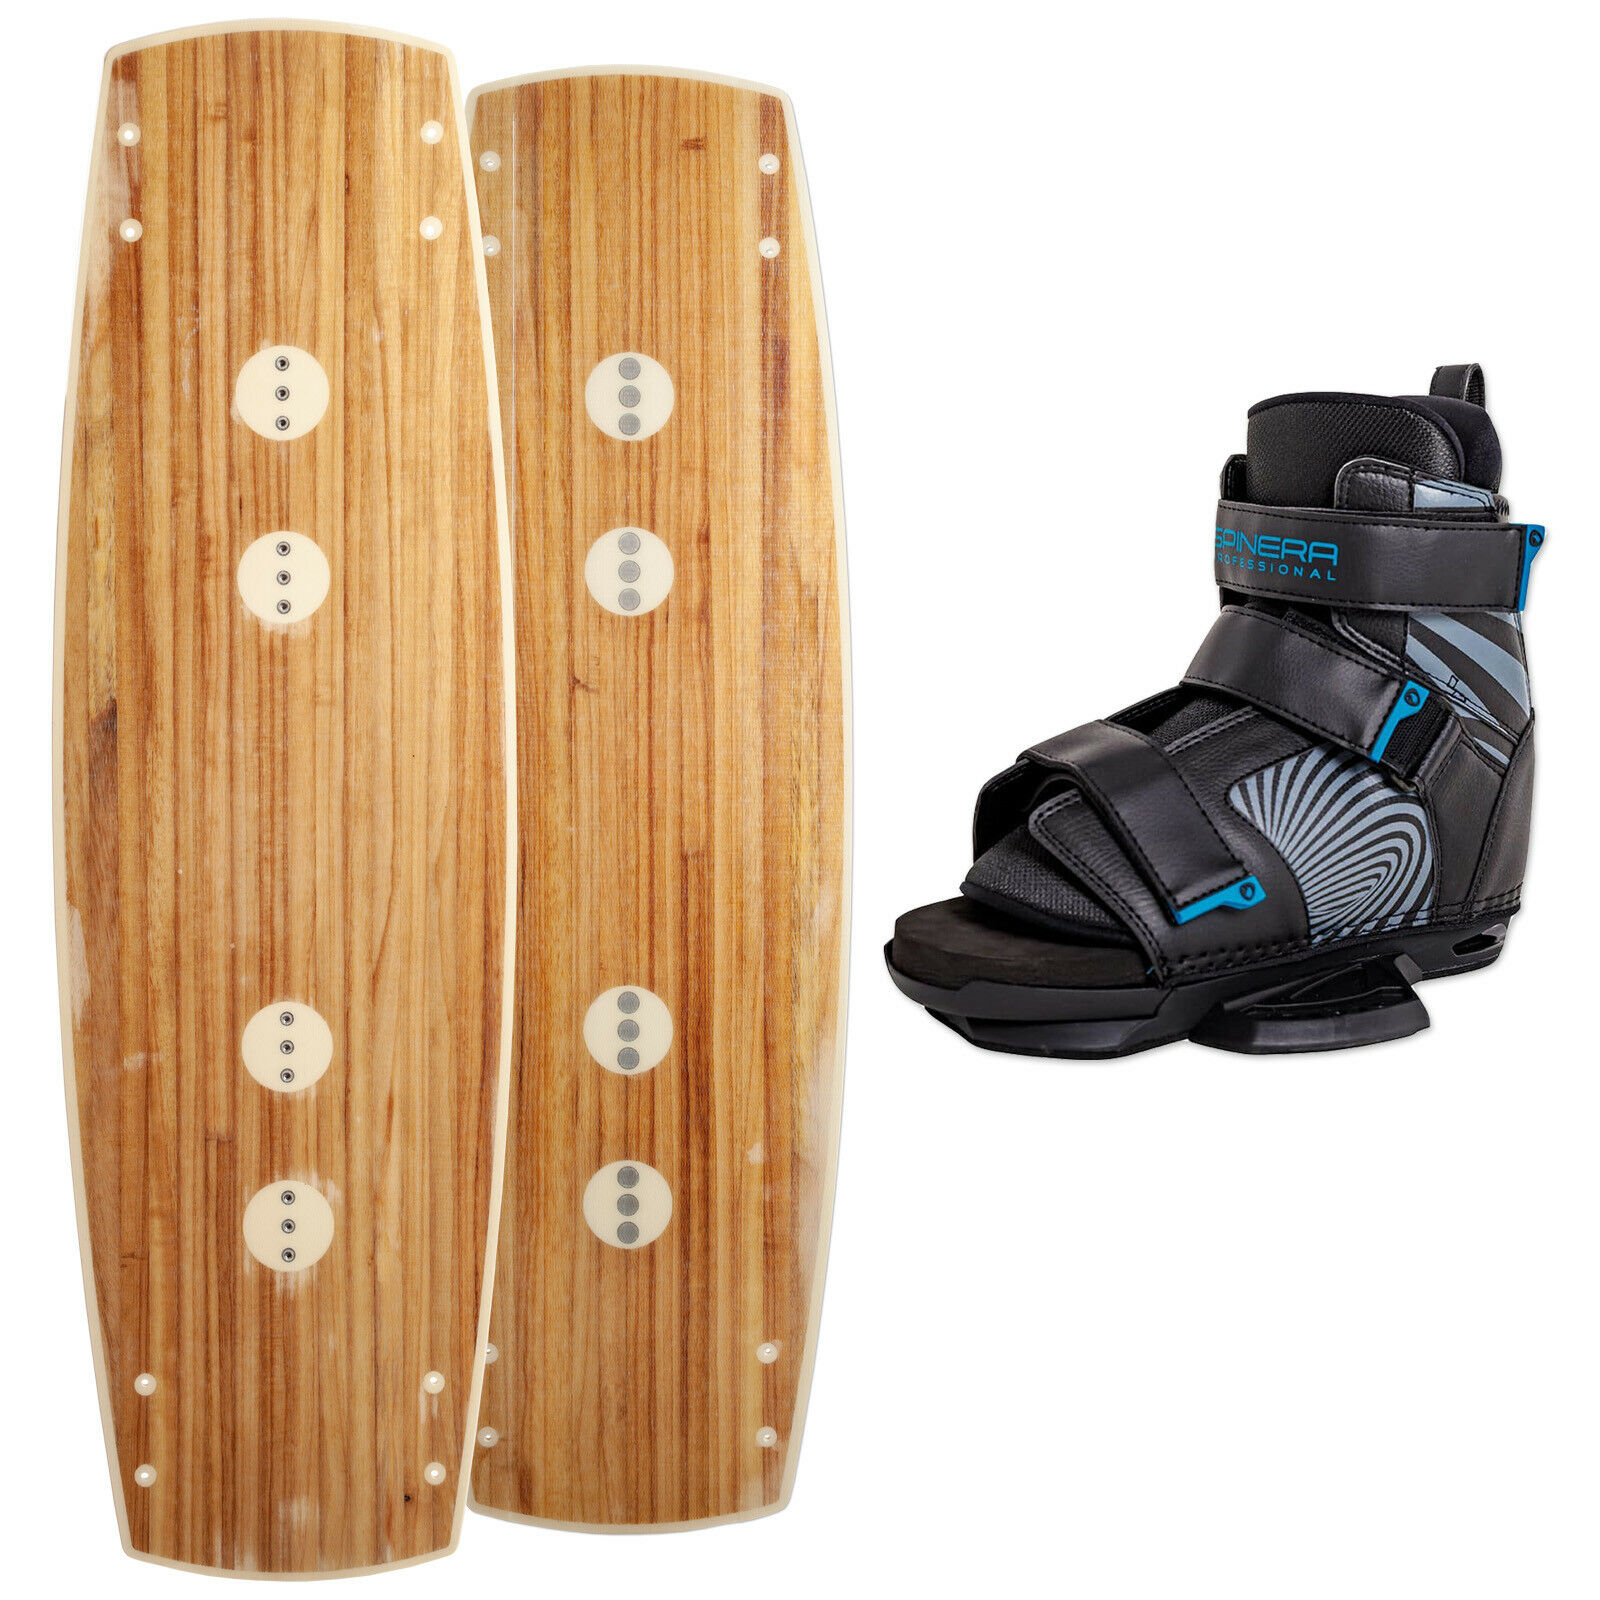 F2 WOODY WAKEBOARD 139 CM 2020 CABLE PARK OBSTACLES CROSSOVER BOARD